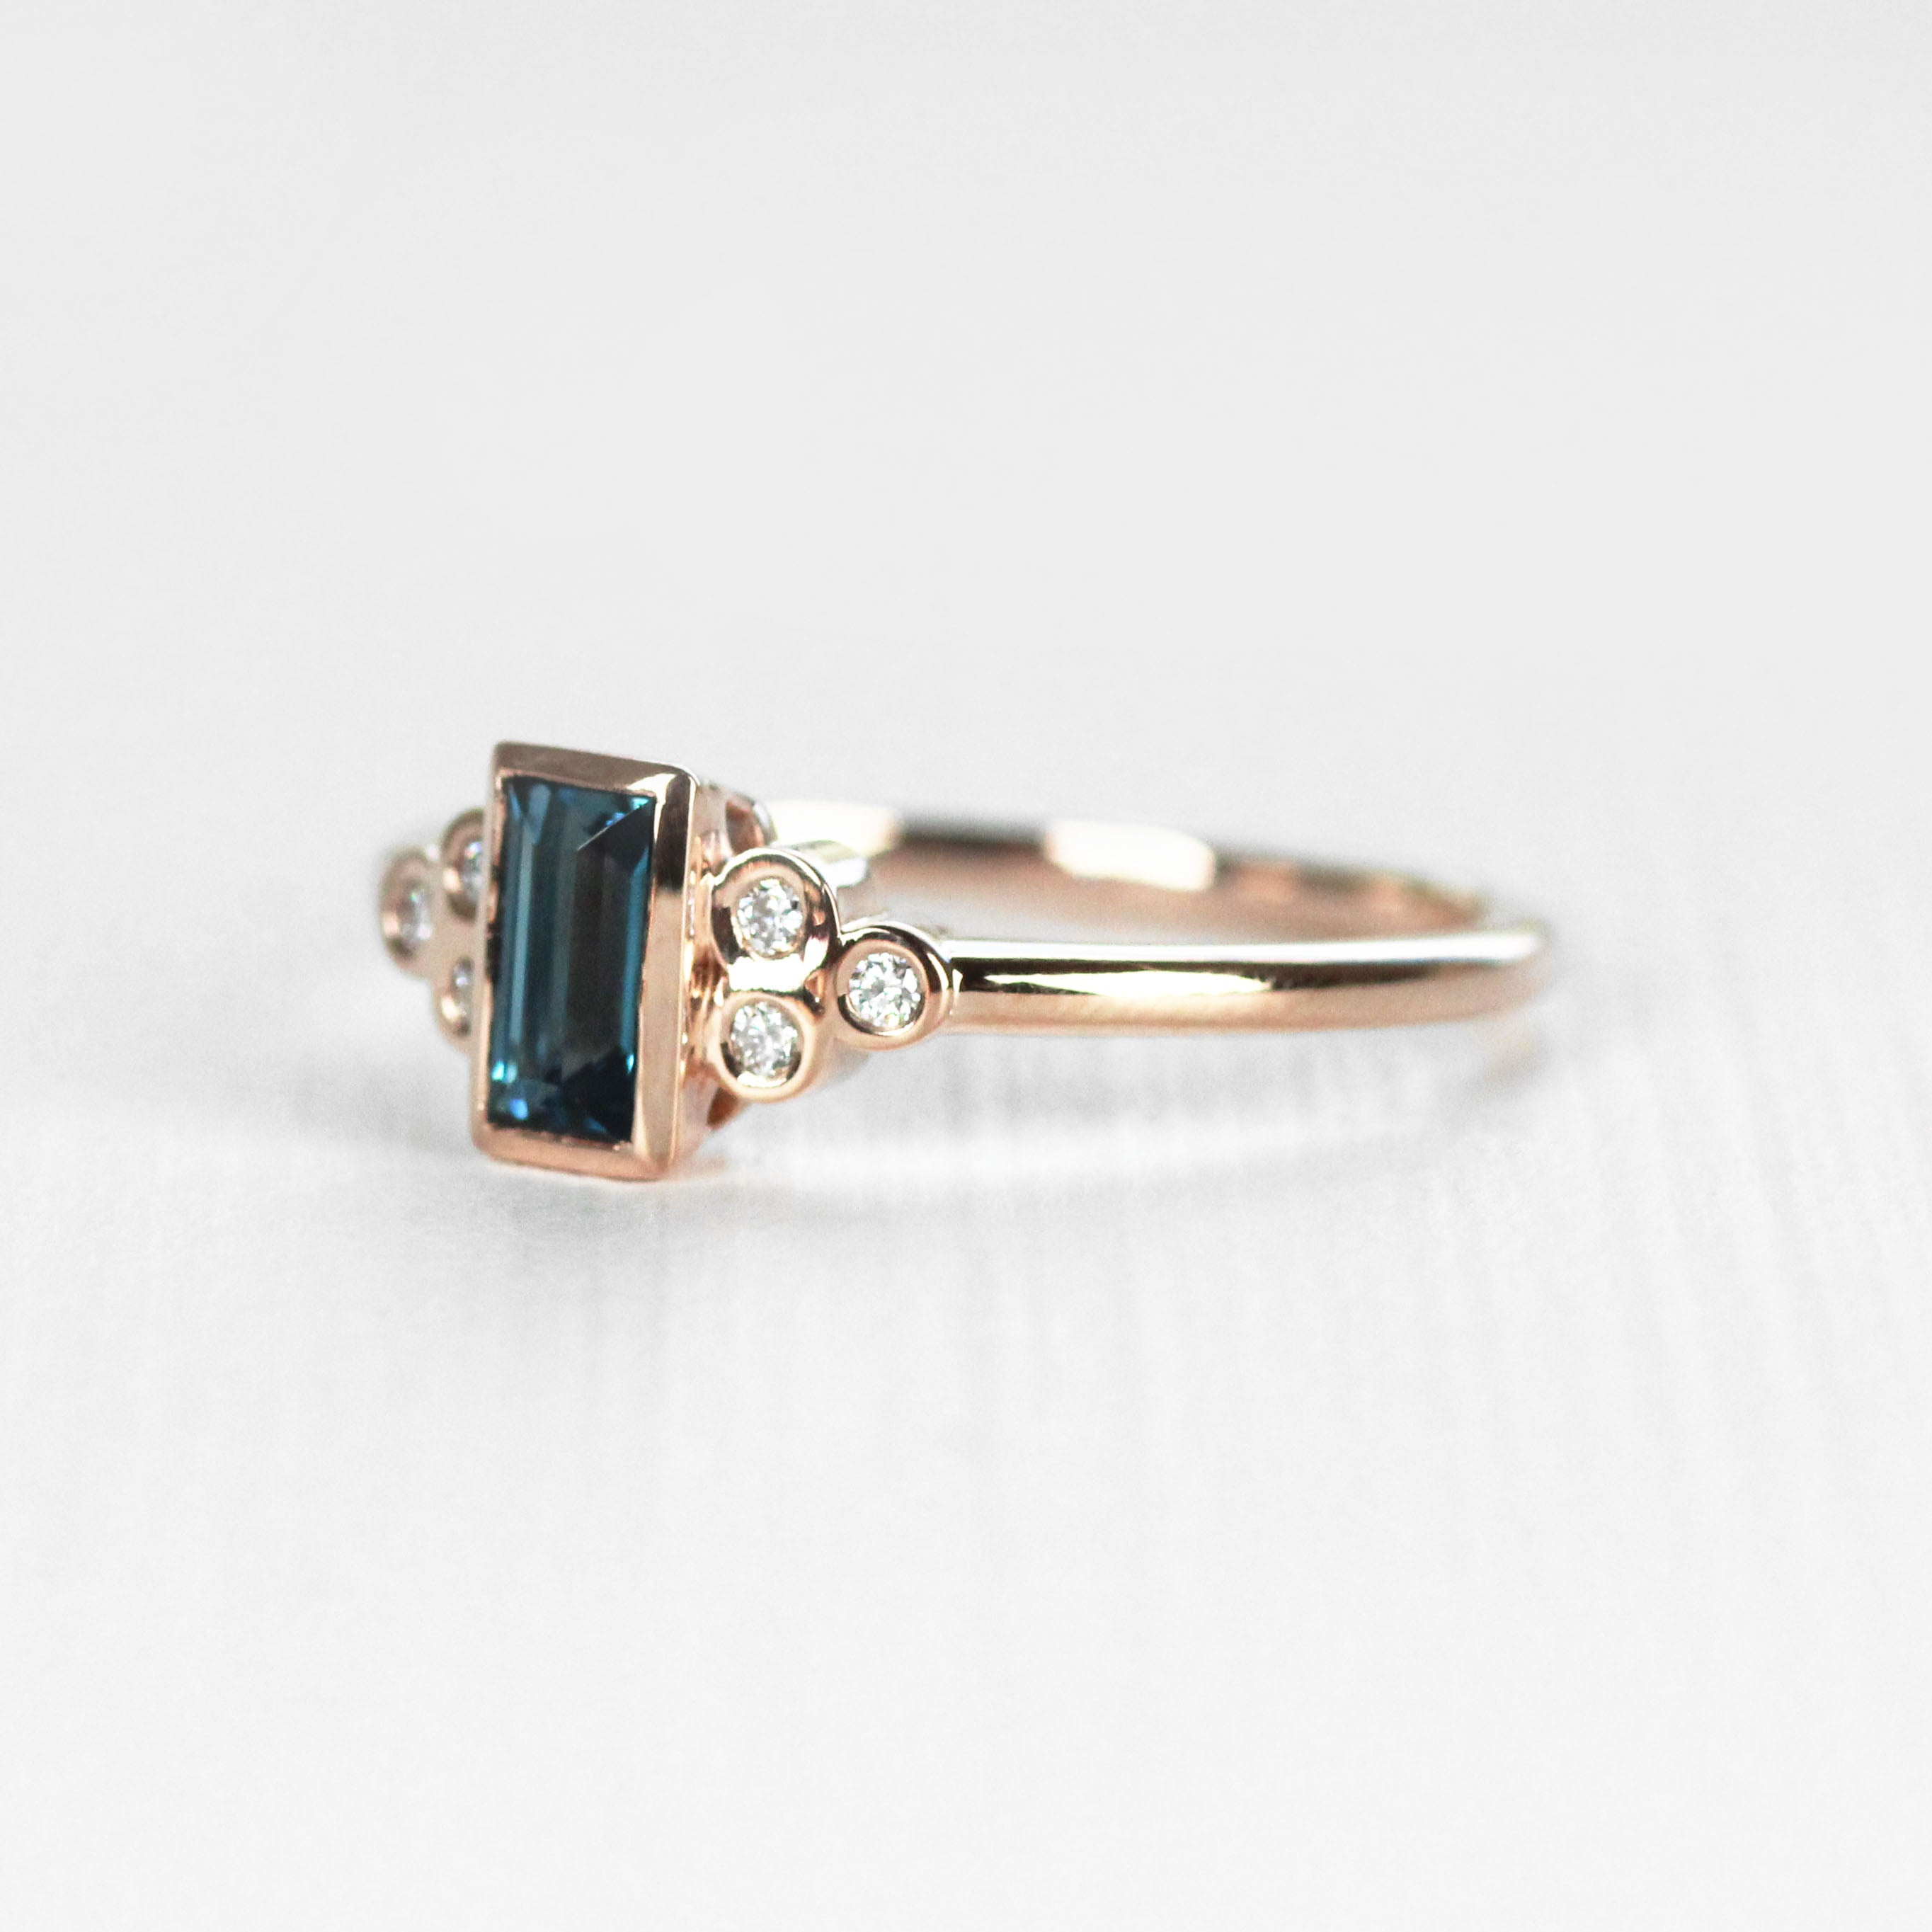 Sophia - London Blue Topaz in Rose Gold Ring - Made to order - Salt & Pepper Celestial Diamond Engagement Rings and Wedding Bands  by Midwinter Co.